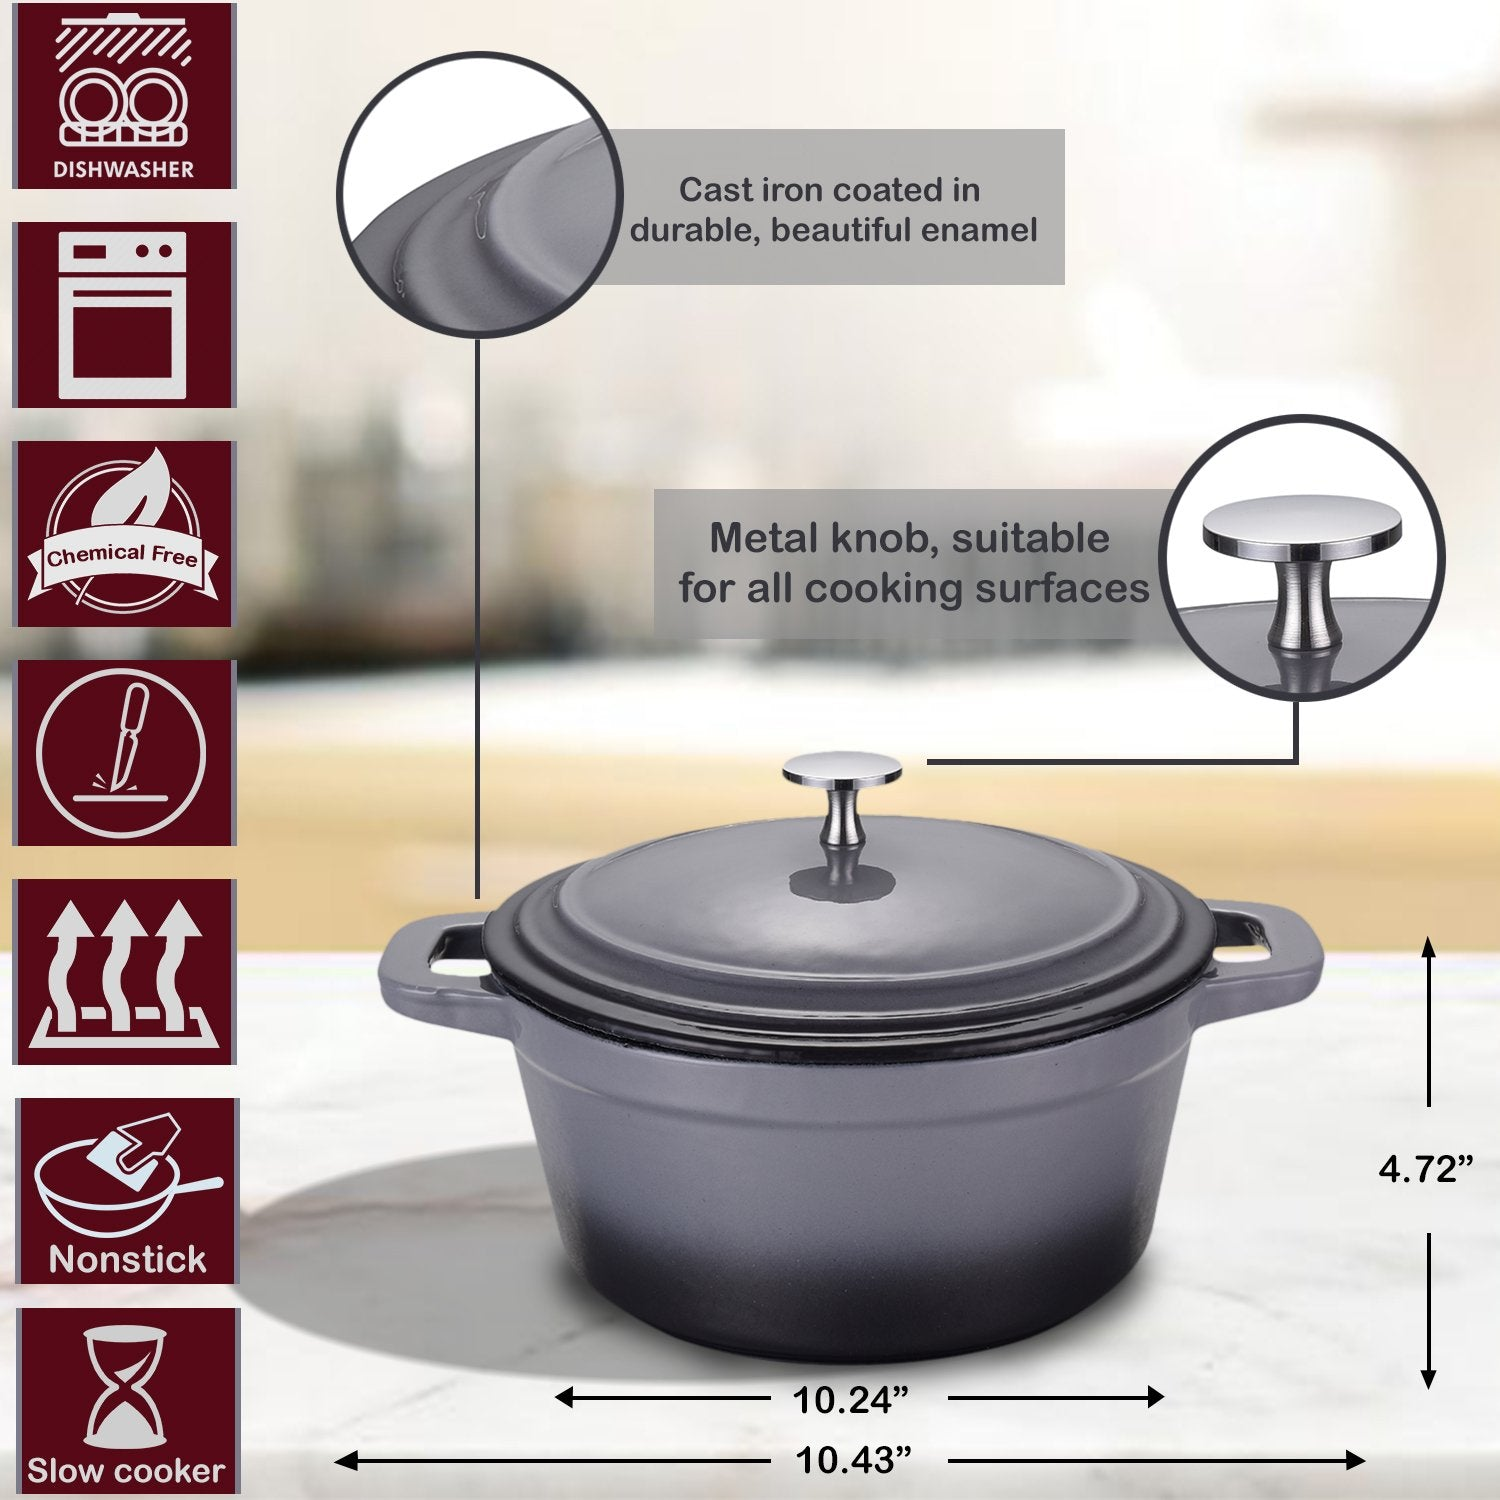 Cast Iron Full Painted Cream Enamelled Round Casserole Pan with Lid - 3.3 L Capacity